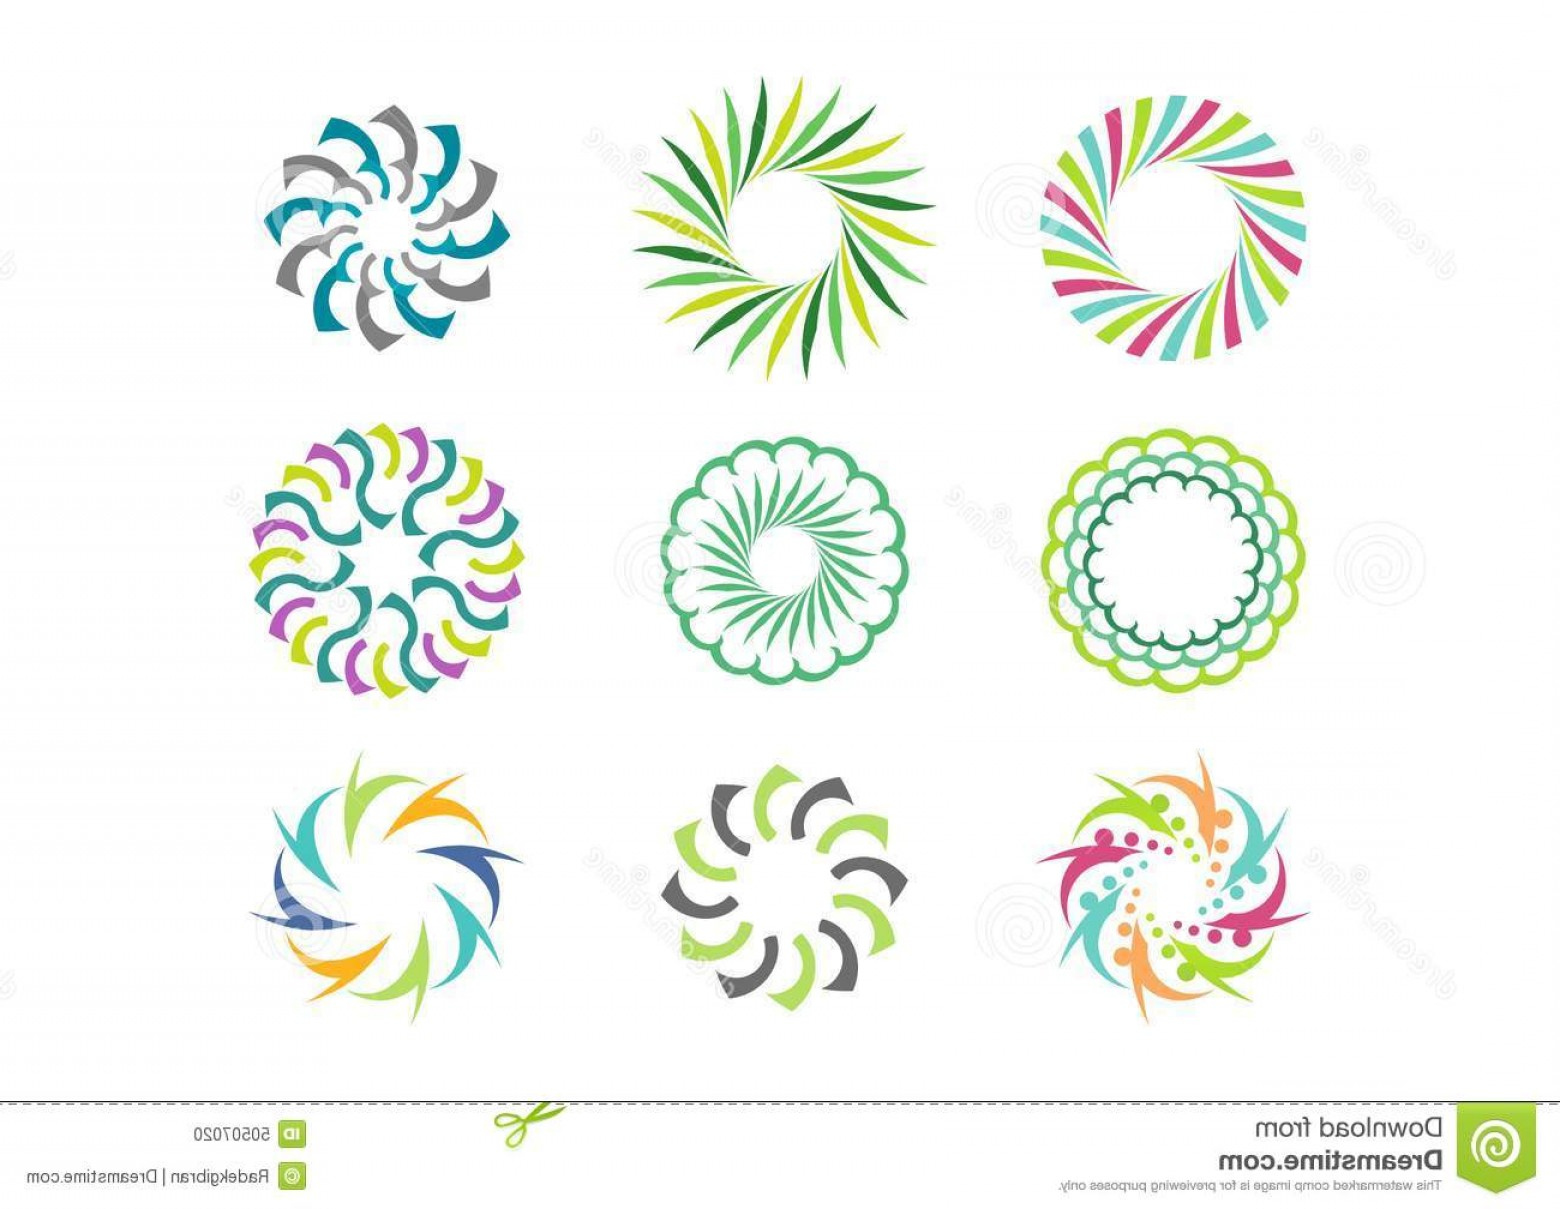 Modern Flower Logo Vector: Stock Illustration Floral Circle Logo Template Set Round Abstract Infinity Flower Pattern Vector Design Image